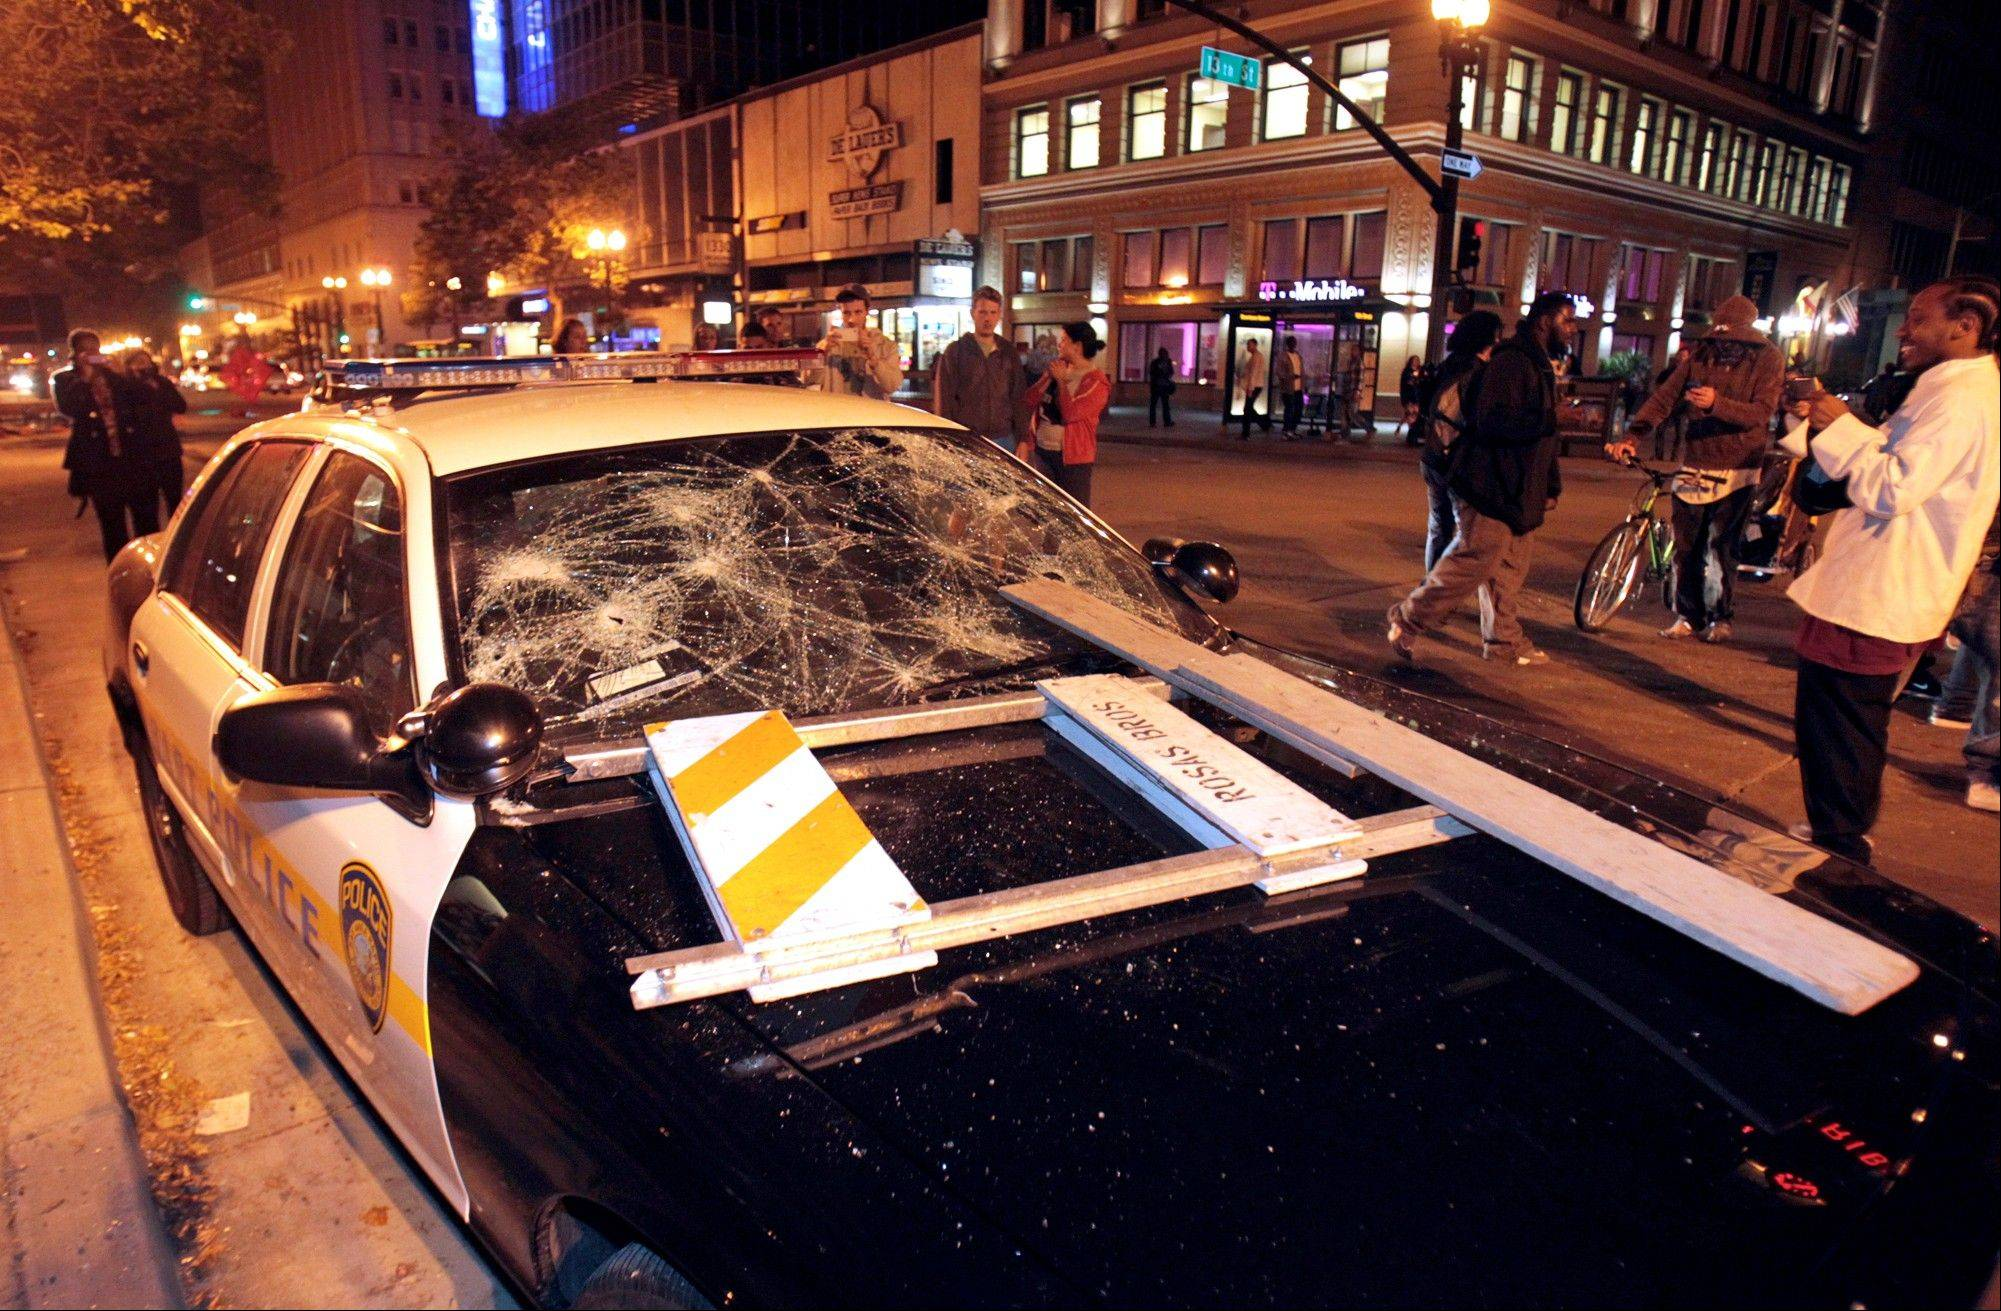 A BART police vehicle is vandalized during a protest after George Zimmerman was found not guilty in the 2012 shooting death of teenager Trayvon Martin early Sunday in Oakland, Calif.